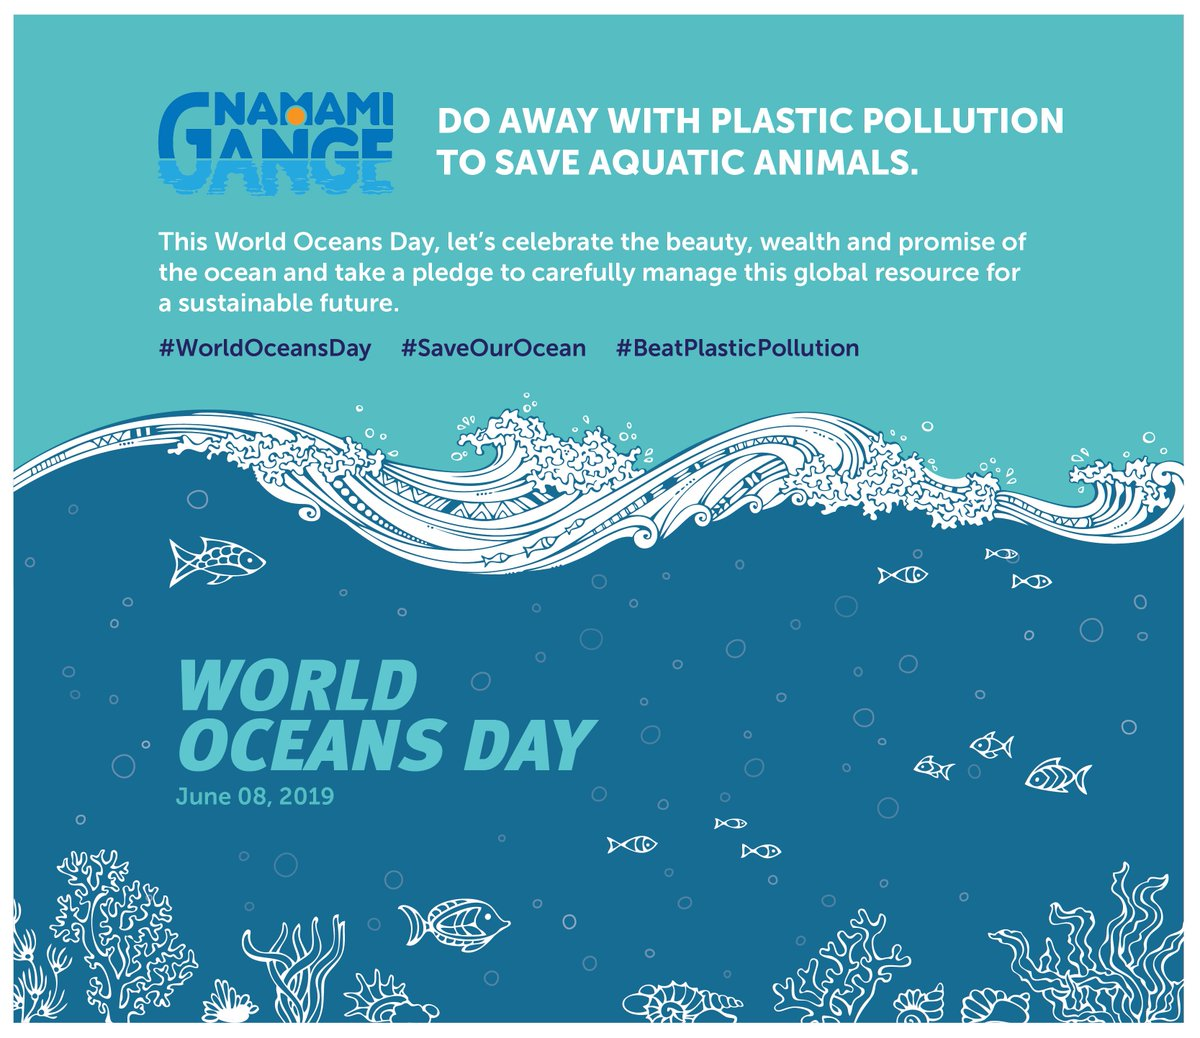 #RT @mowrrdgr: RT @cleanganganmcg: This #WorldOceansDay, let's celebrate the beauty, wealth and promise of the ocean and take a pledge to carefully manage this global resource for a sustainable future.  #NamamiGange